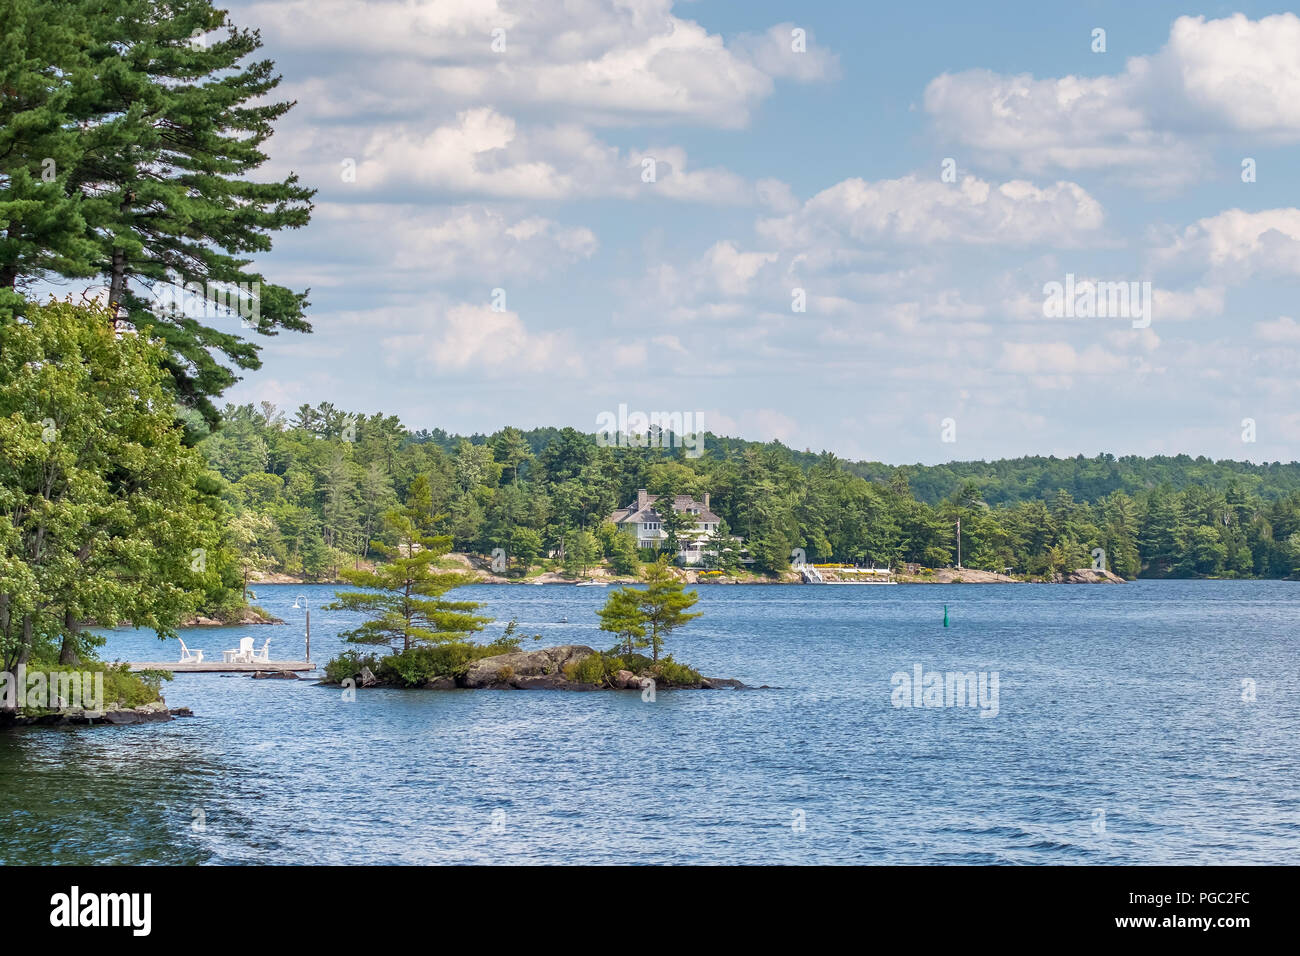 View of Lake Muskoka in Ontario Canada taken during the summer.  A cottage is seen in the background. - Stock Image